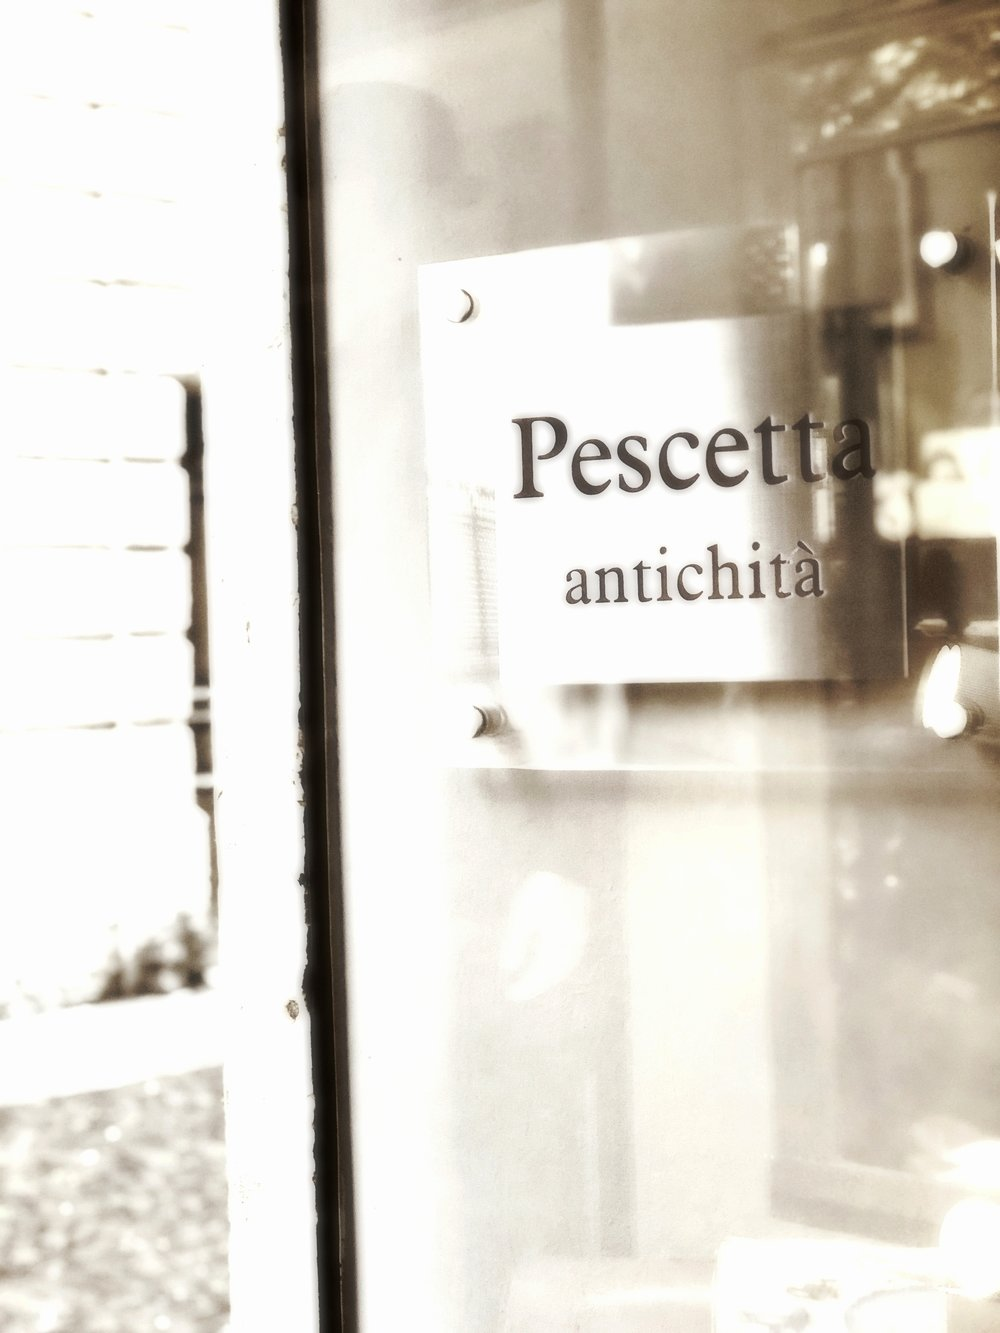 Pescetta Antichità - Official event partner of Nine bottles in Verona. Corso Santa Anastasia 25/a